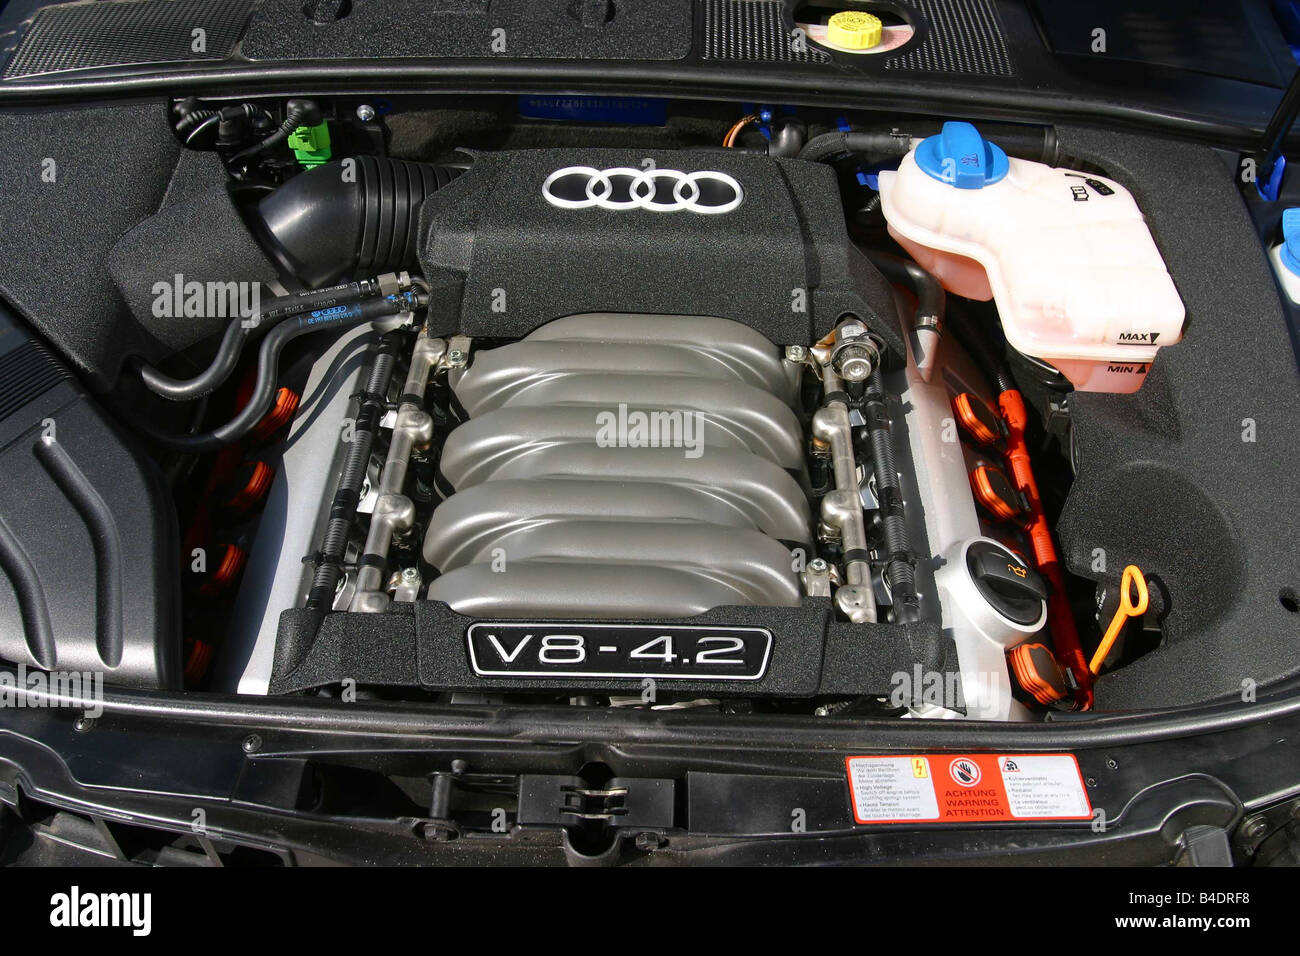 Audi Engine Stock Photos Audi Engine Stock Images Alamy